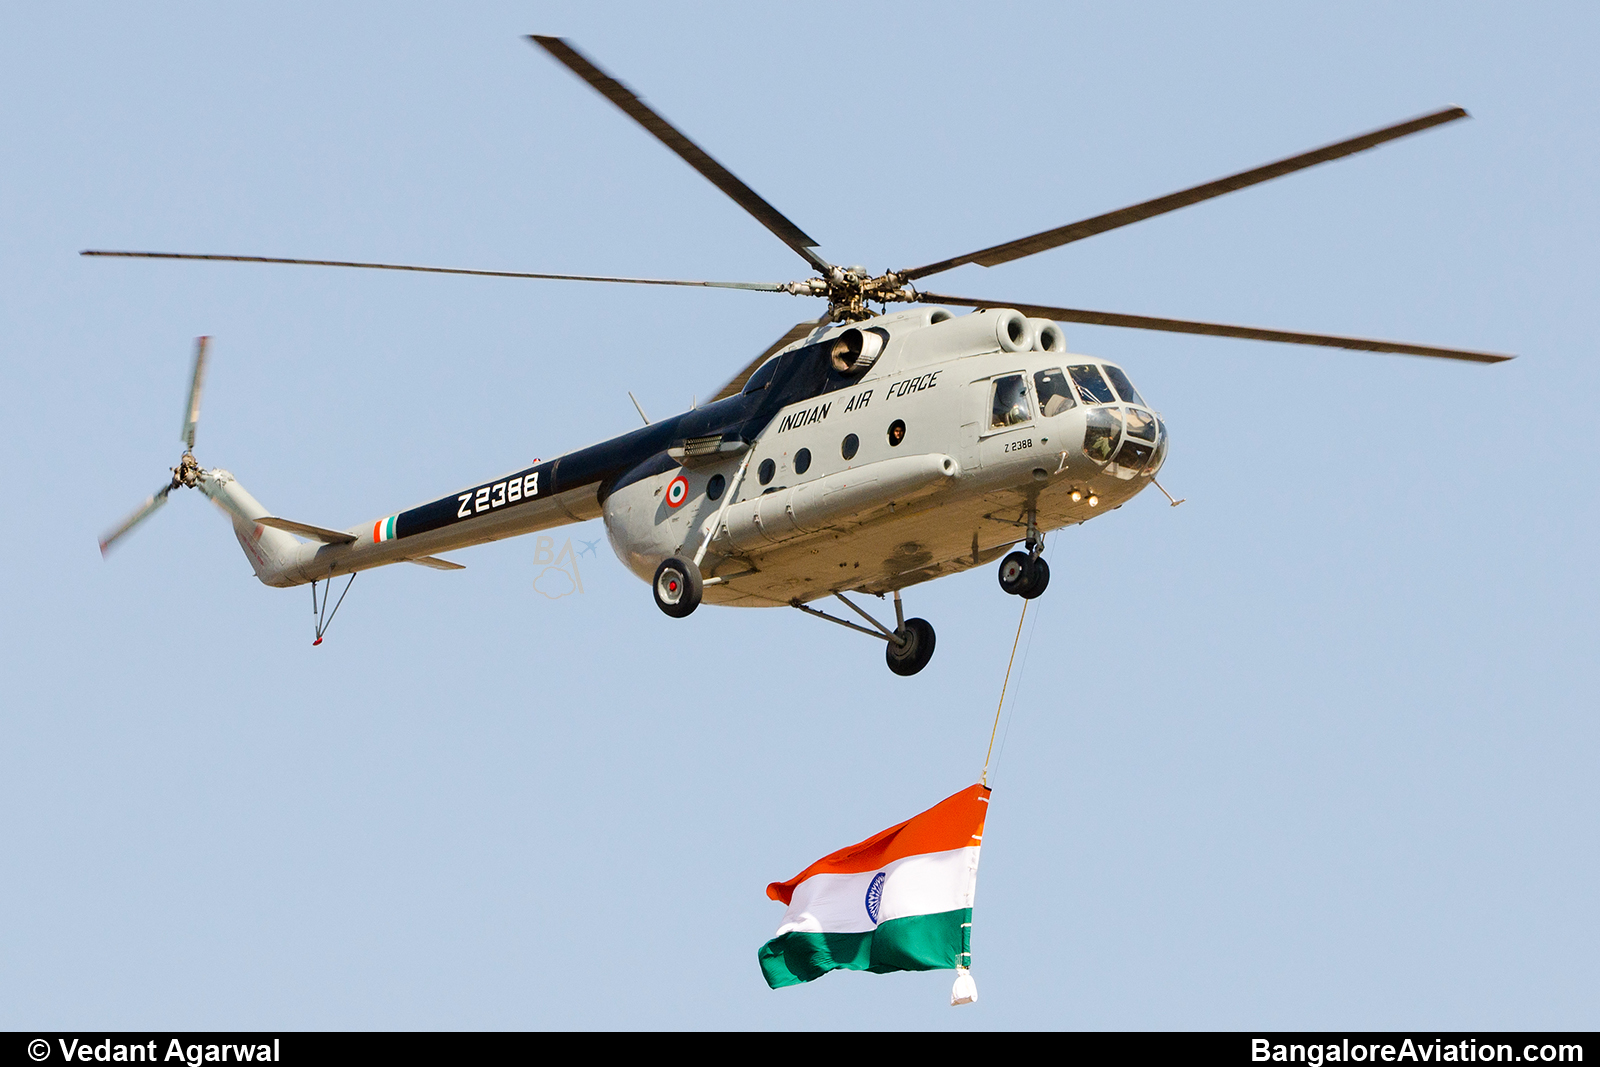 helicopter in india with Plane Spotting Helicopters Indian Air Force on Plane Spotting Helicopters Indian Air Force together with City Of Change besides File AH 64A Apache Greek Army Stefanovikion 3 as well Printphoto in addition File Swiss Dauphin helicopter 4.